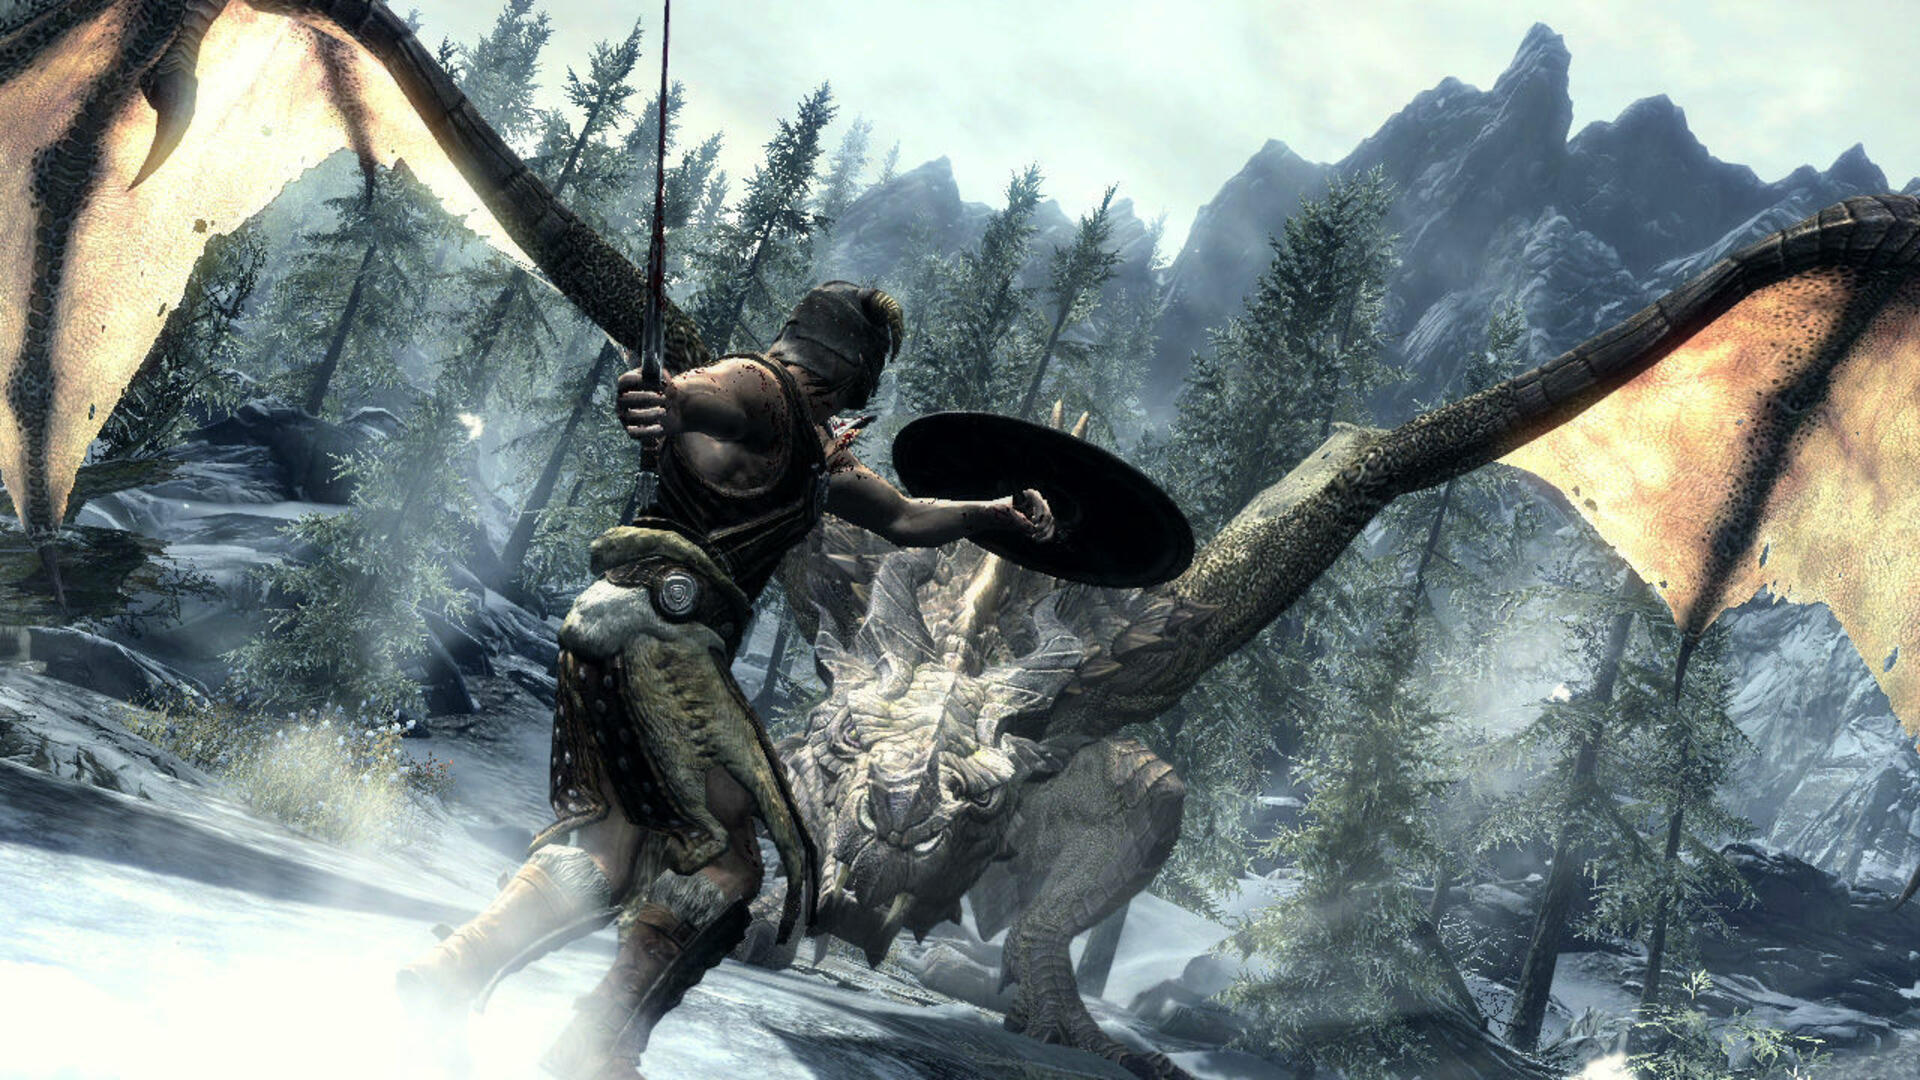 Skyrim Together (Or Not): Why Two Mod Teams Are Feuding Over a Skyrim Multiplayer Mod